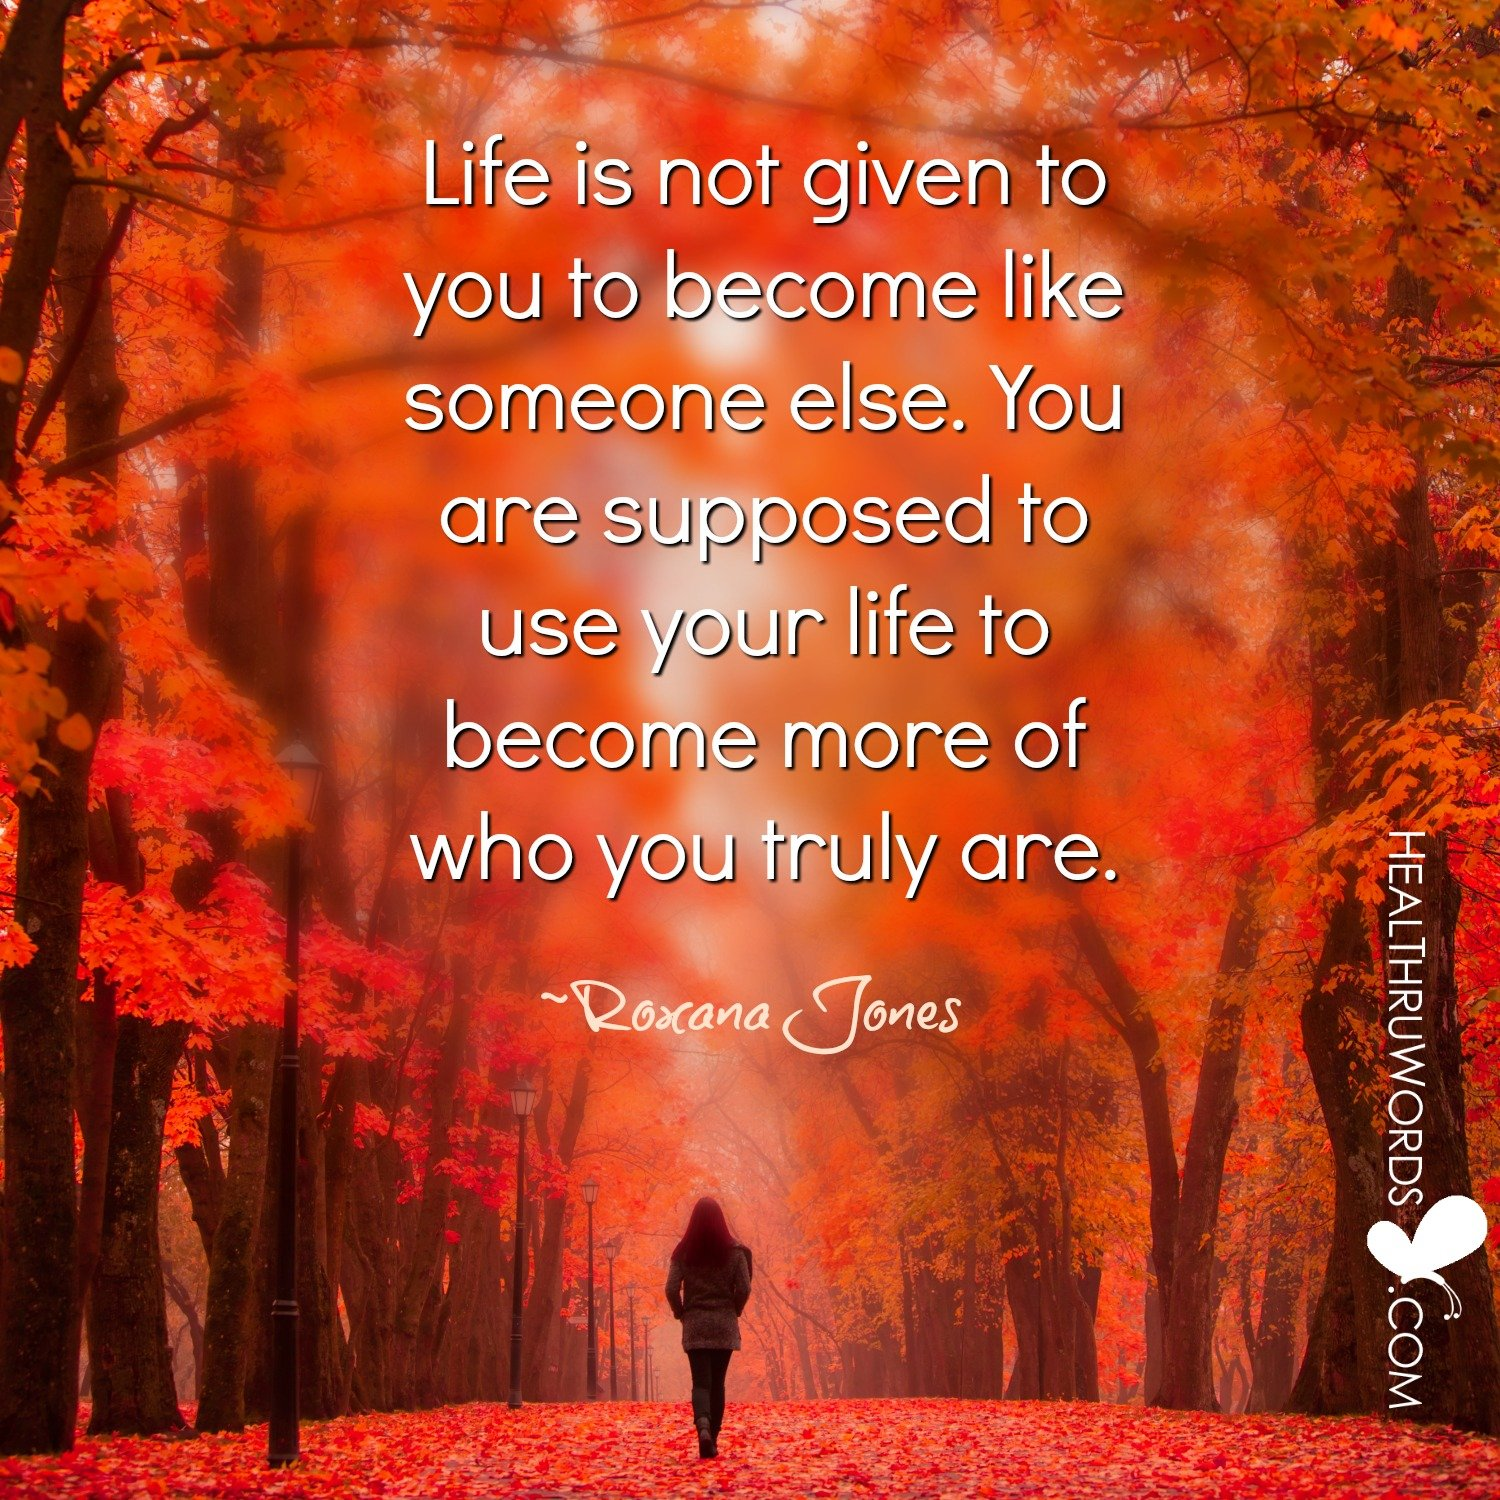 Inspirational Image: More of You